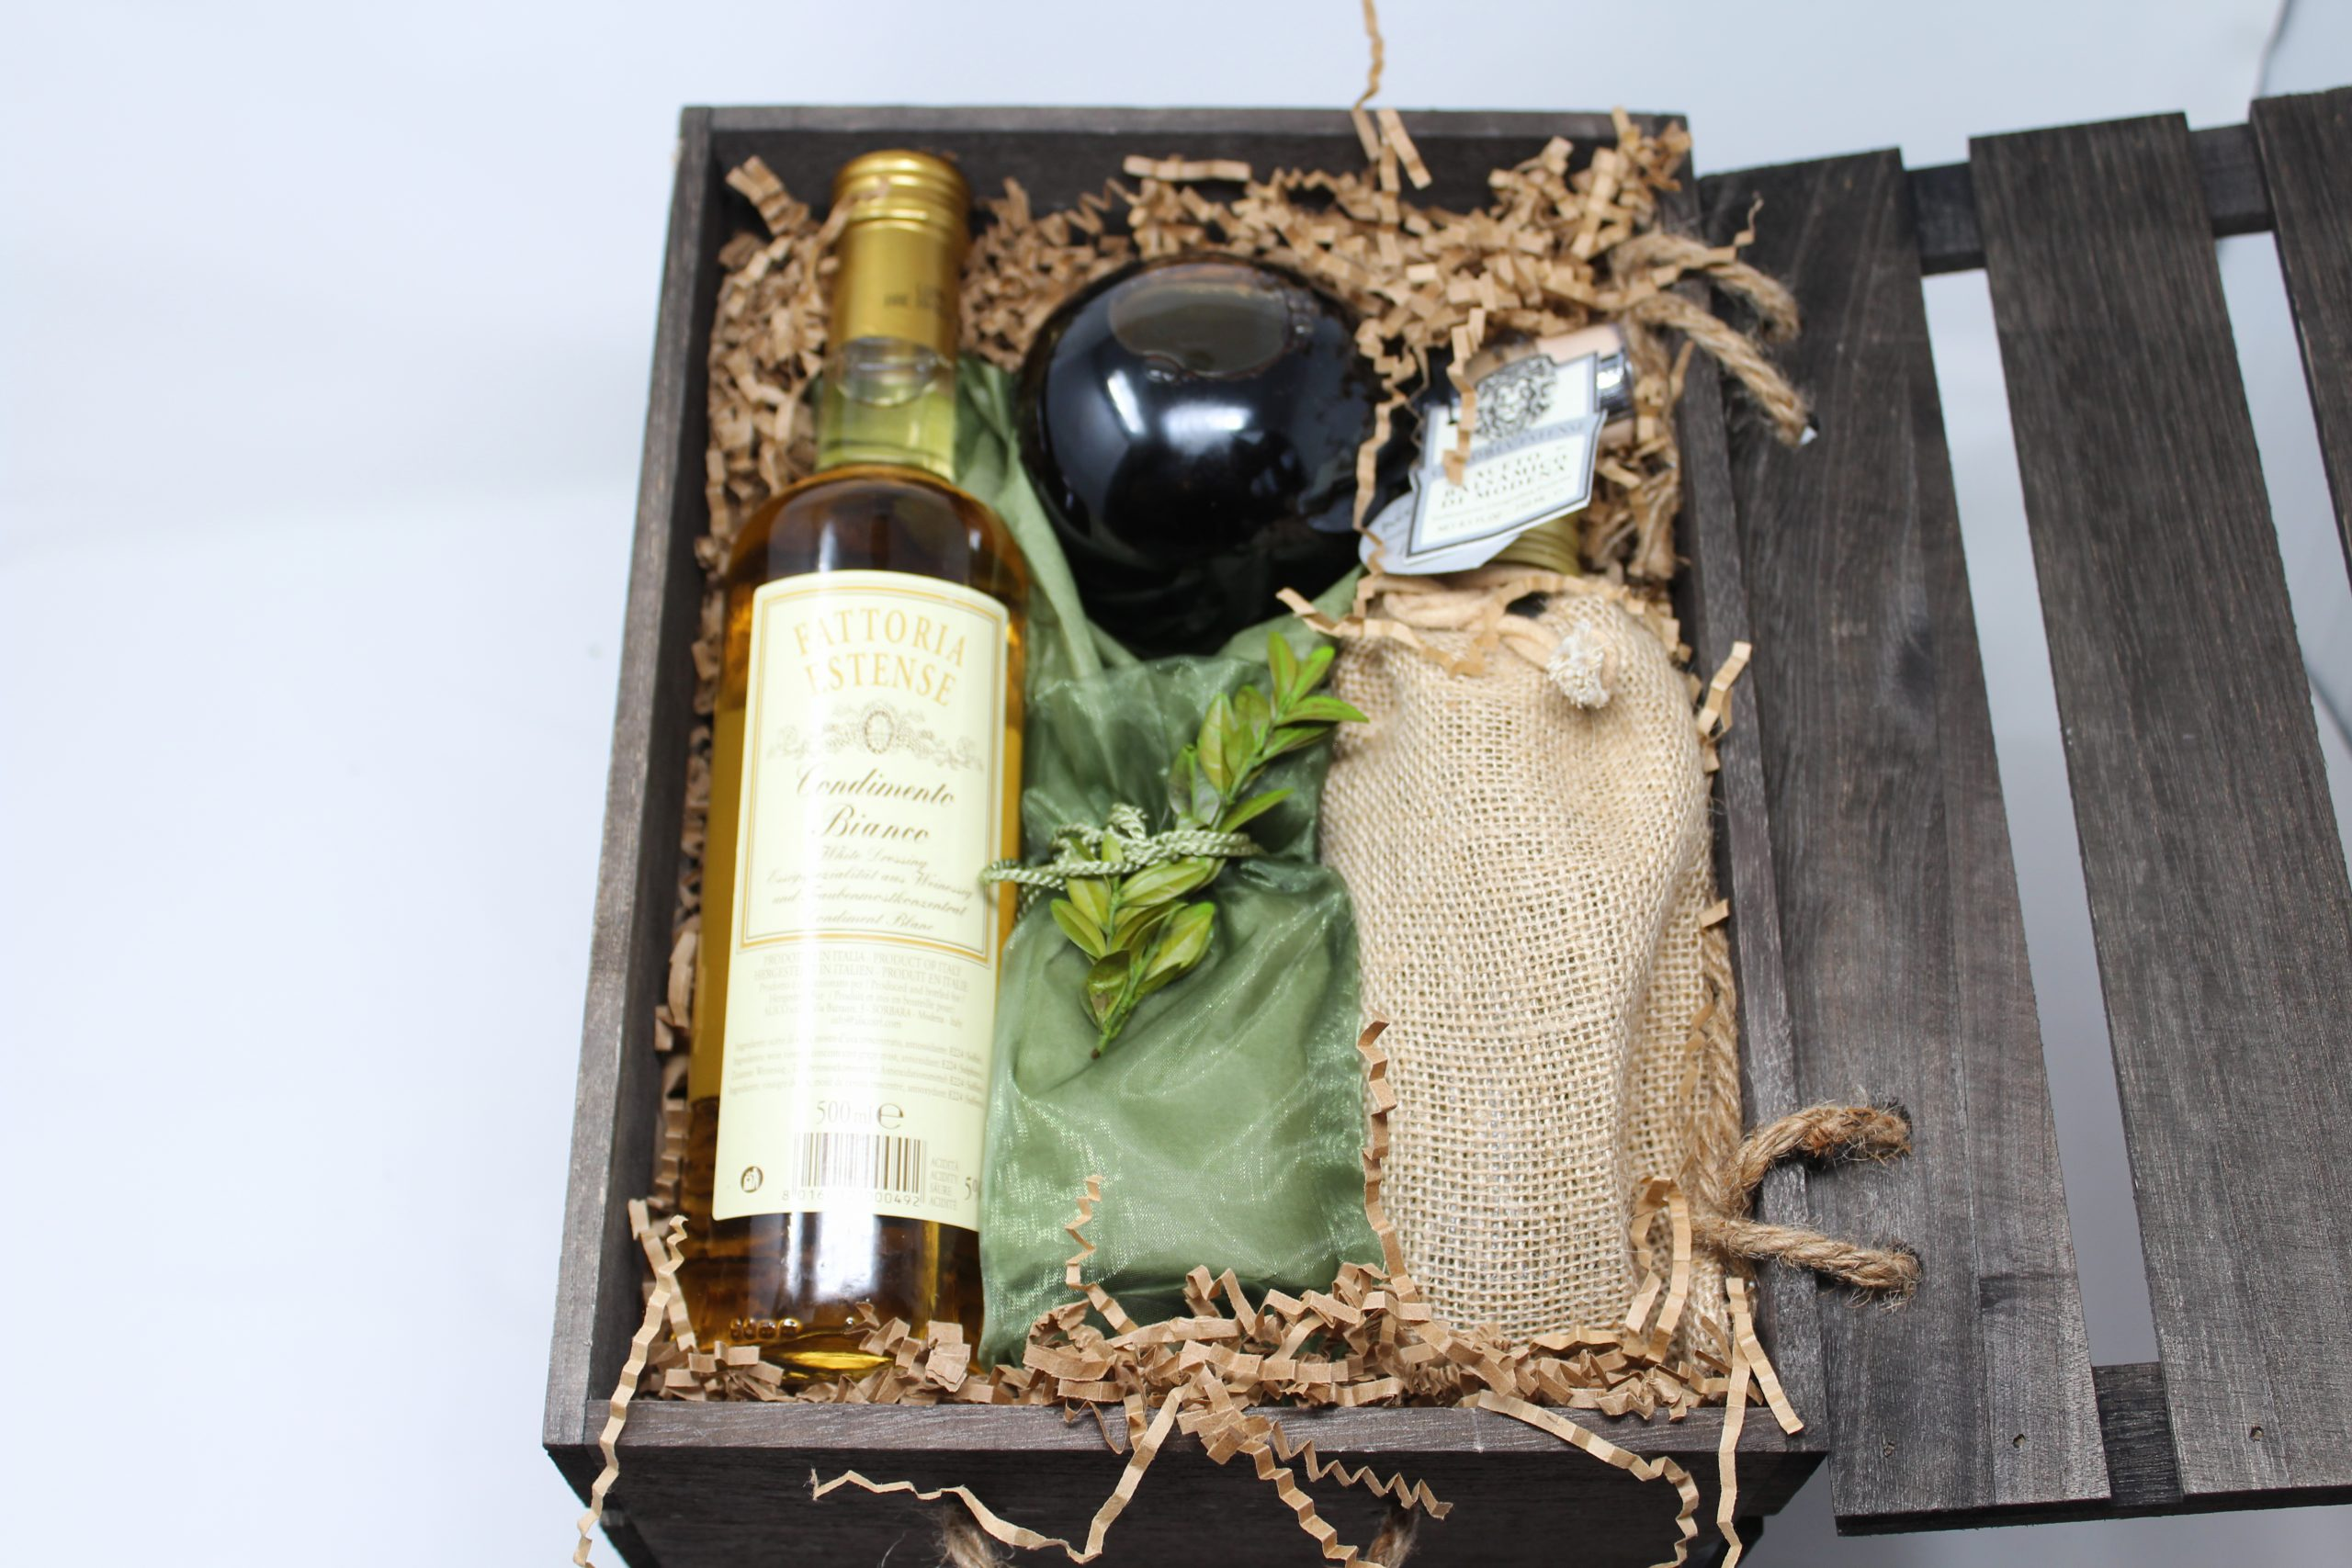 Balsamic Vinegar and Olive Oil Gift Set in Gift Crate Image